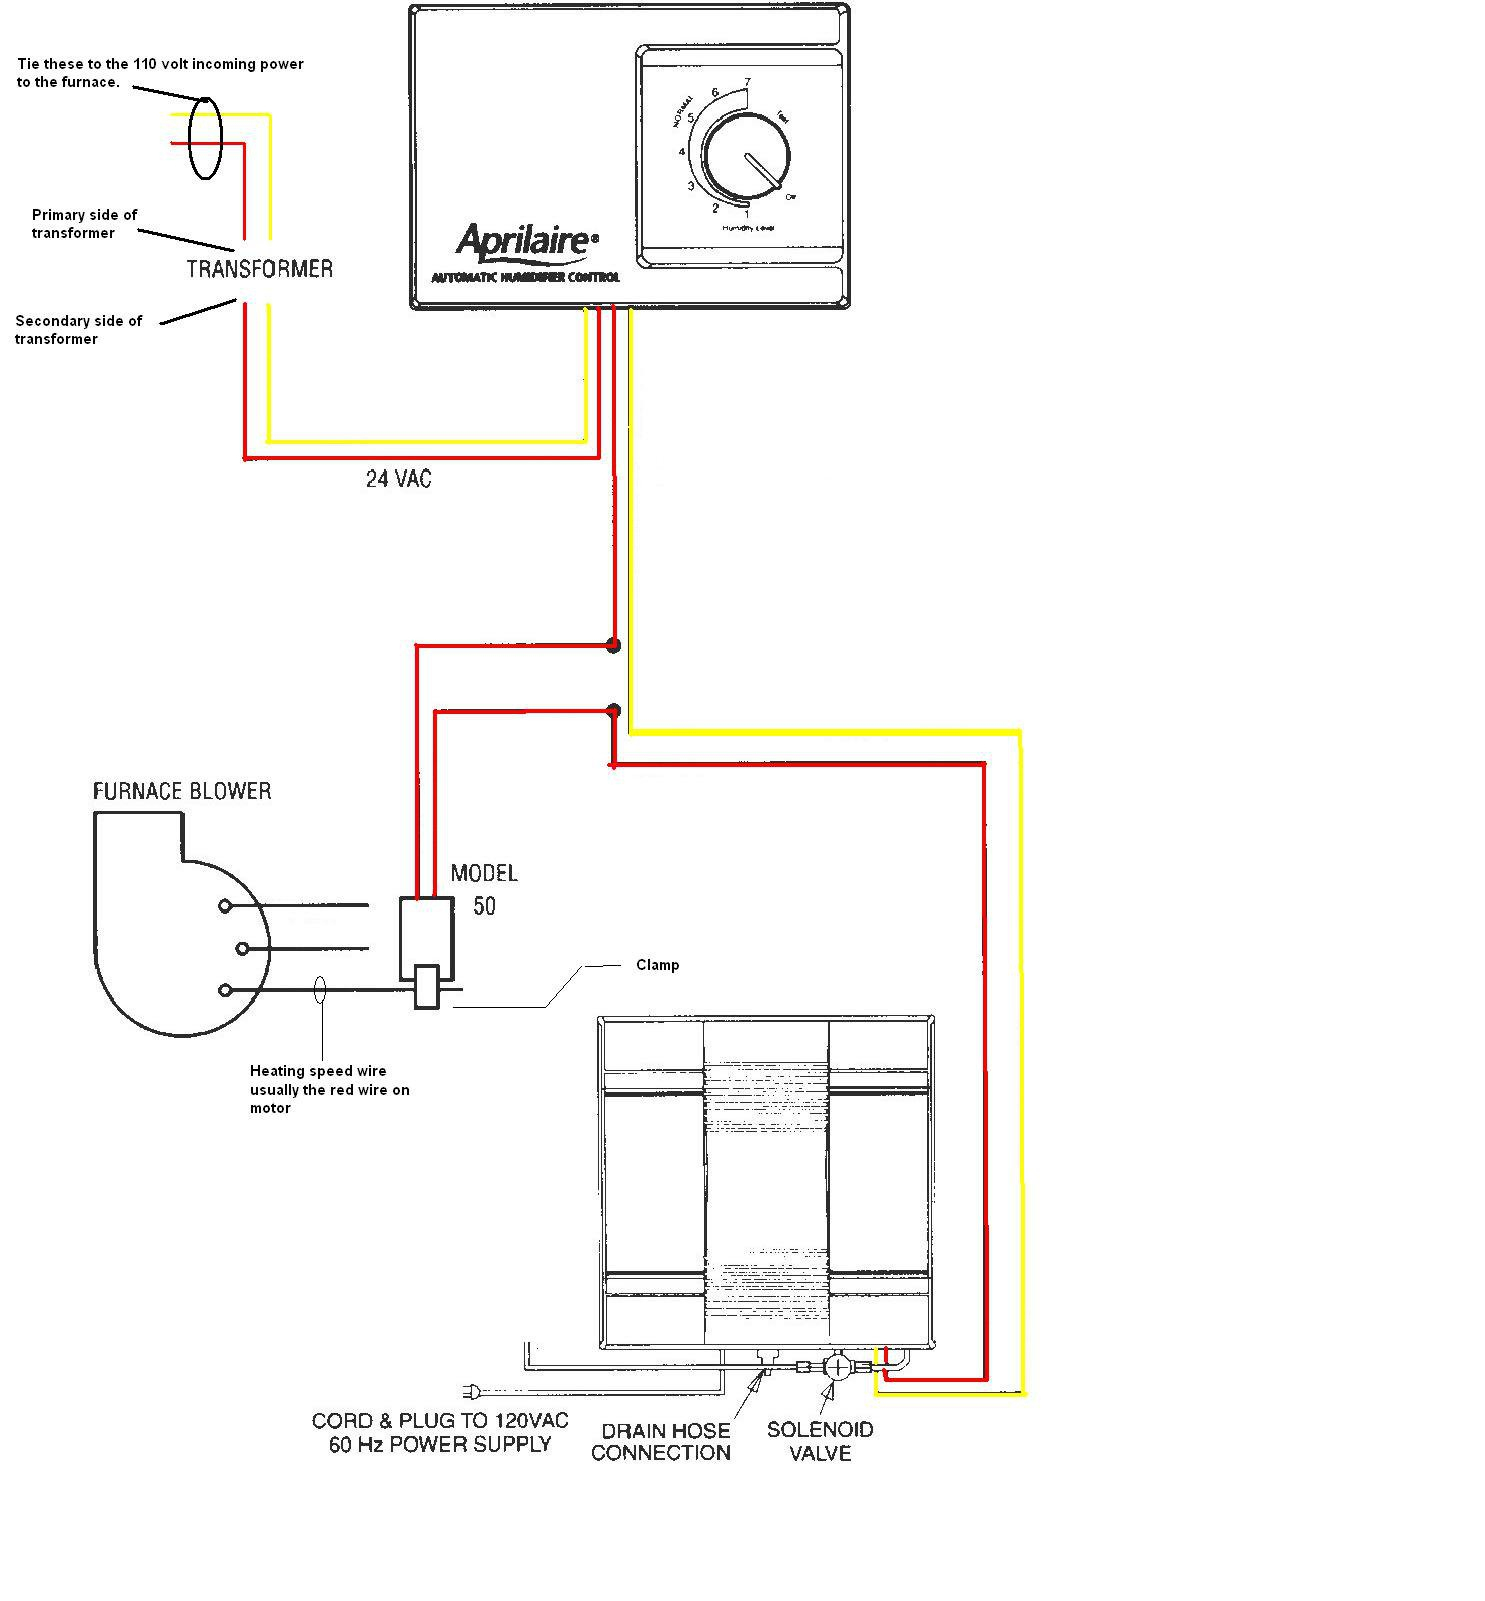 Humidifier Furnace Wiring Diagram | Wiring Diagram - Nest Gen 3 Humidifier Wiring Diagram